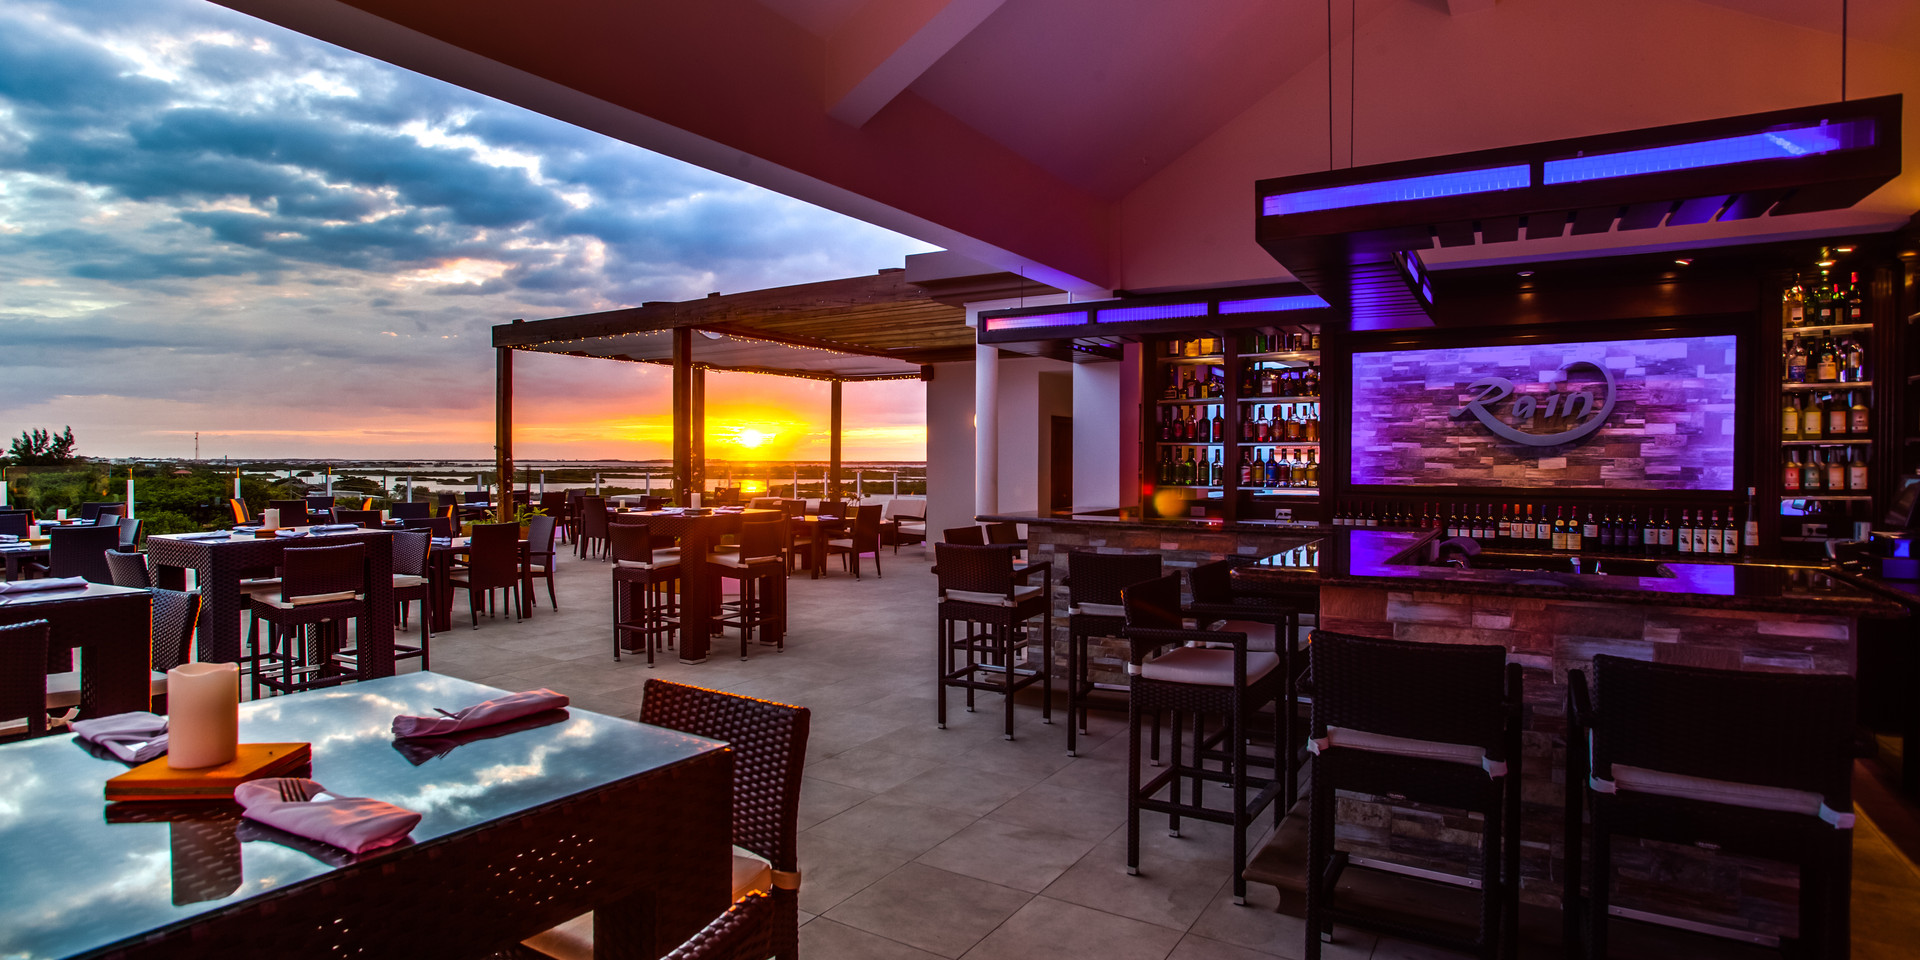 RAIN restaurant. Perfect for sunset views!